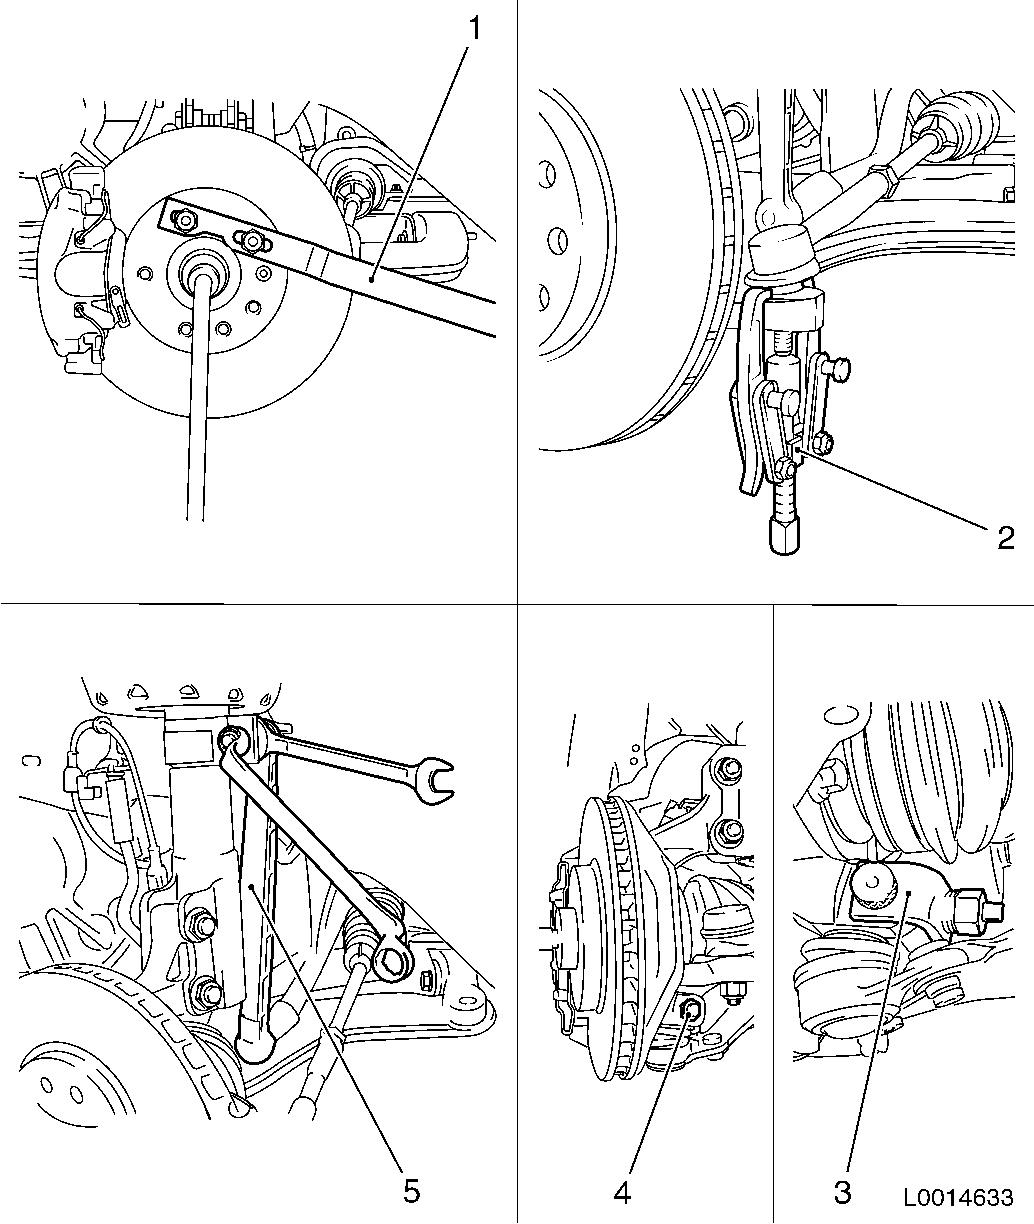 vauxhall workshop manuals u003e astra h u003e e front wheel suspension rh workshop manuals com vauxhall workshop manuals pdf vauxhall workshop manual corsa d